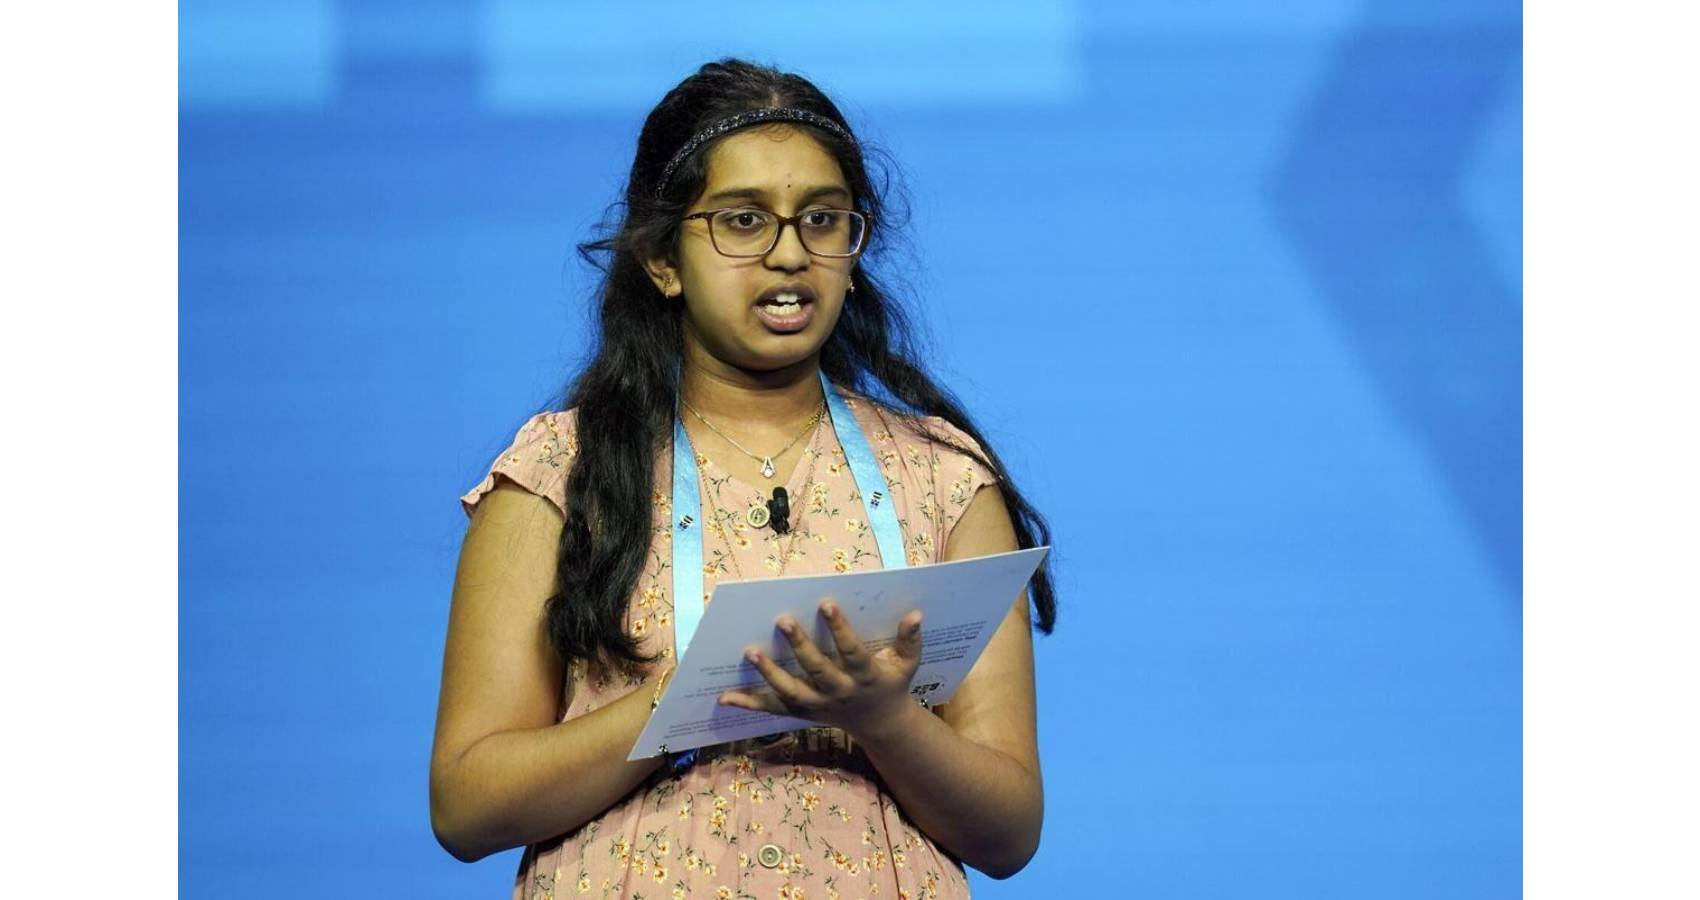 Chaitra Thummala Is Runner Up In Scripps National Spelling Bee